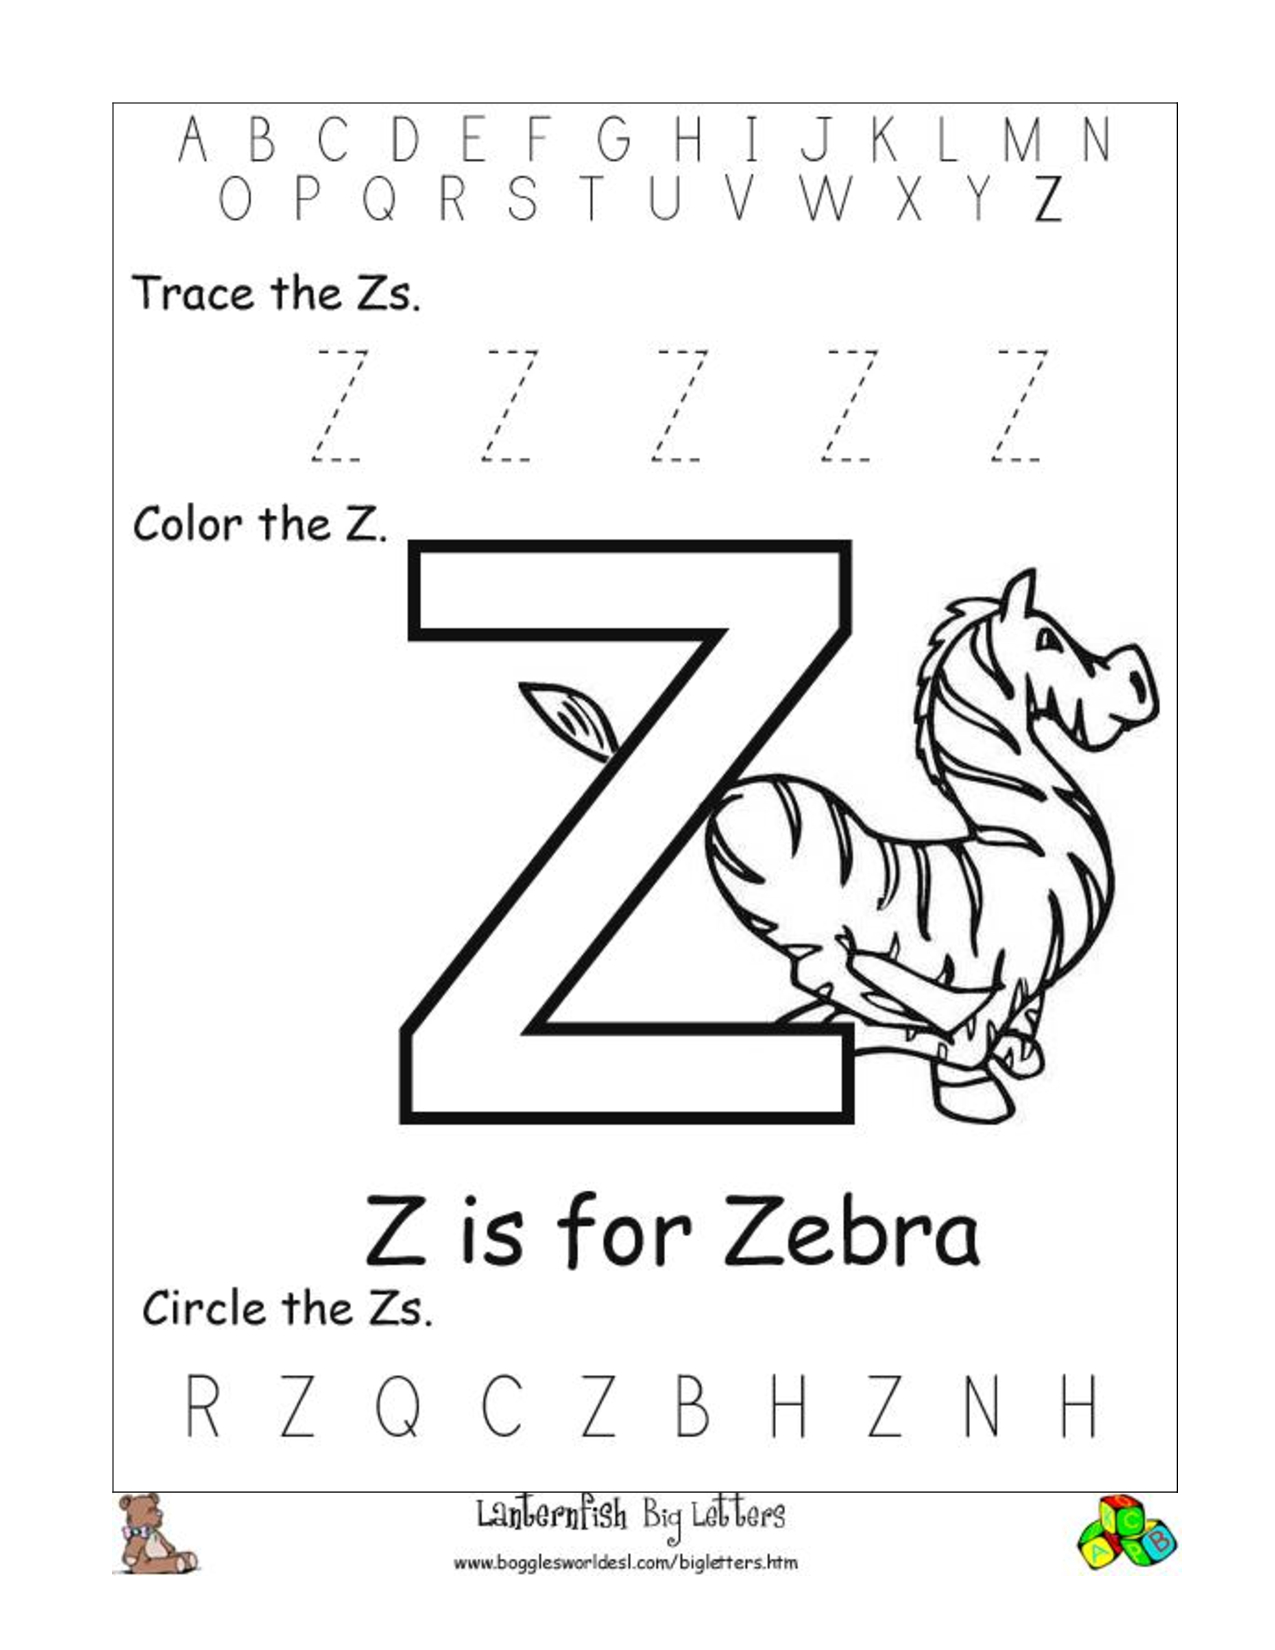 Pinswitty Mae On Projects To Try | Preschool Letters intended for Alphabet Worksheets A To Z